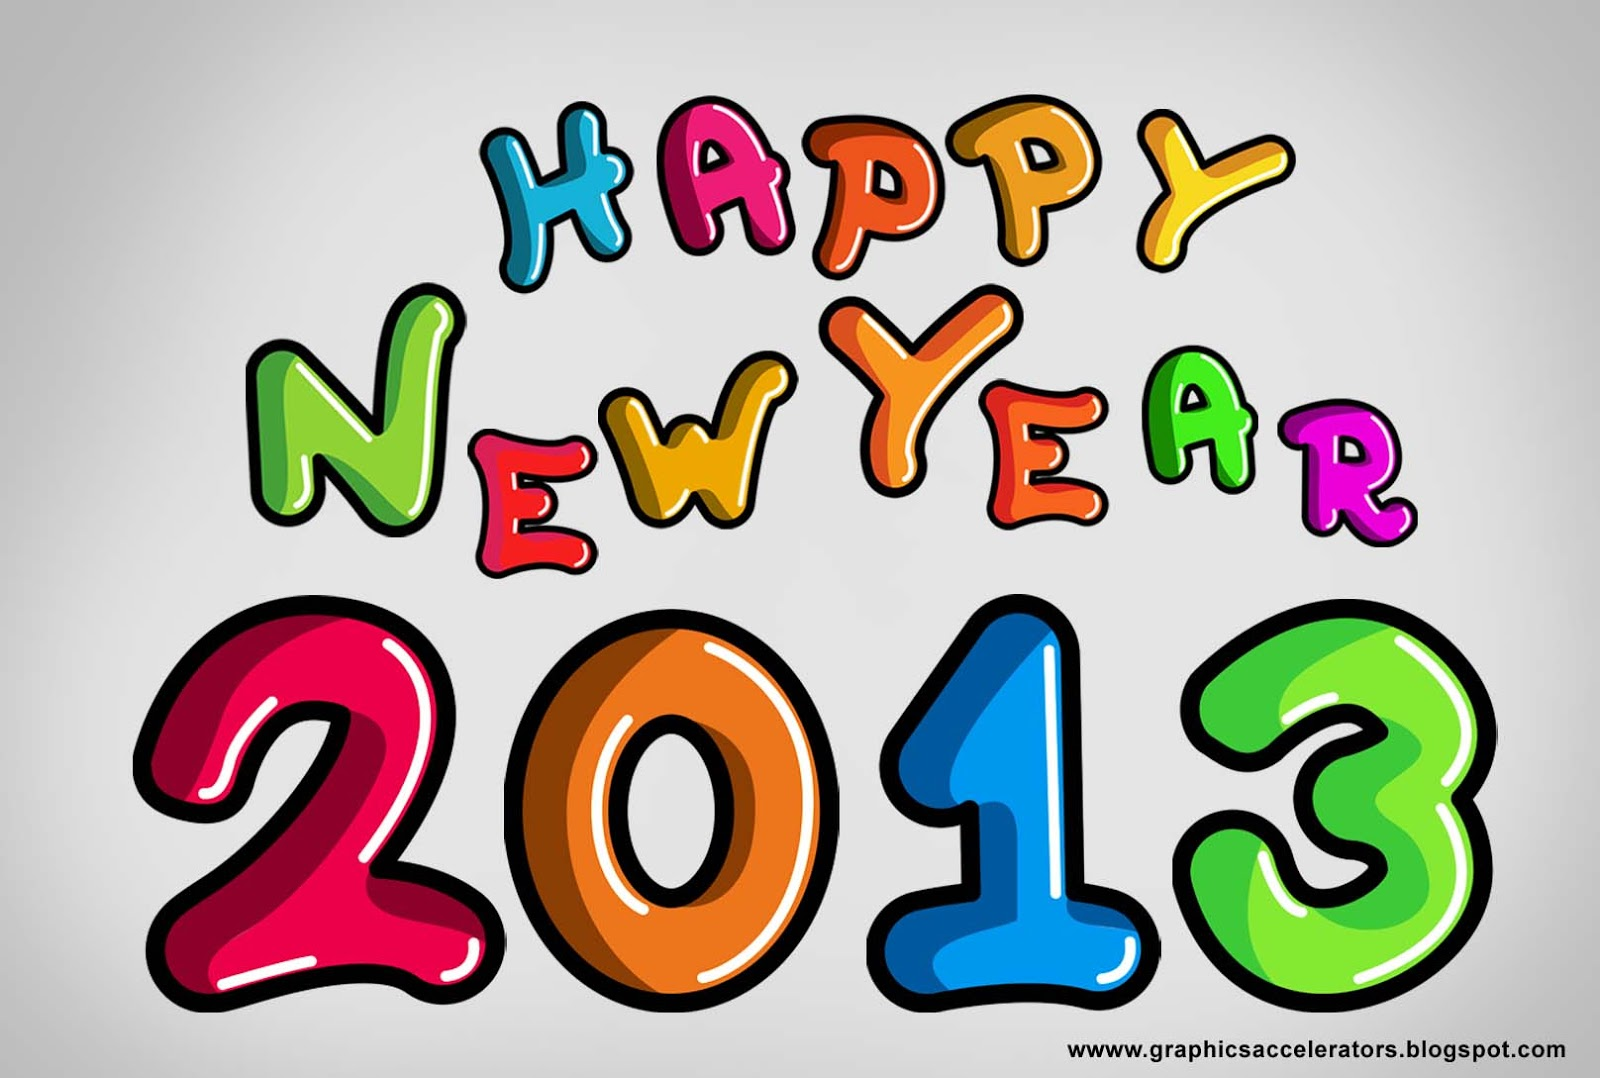 Happy New Year Wallpapers PSDreview